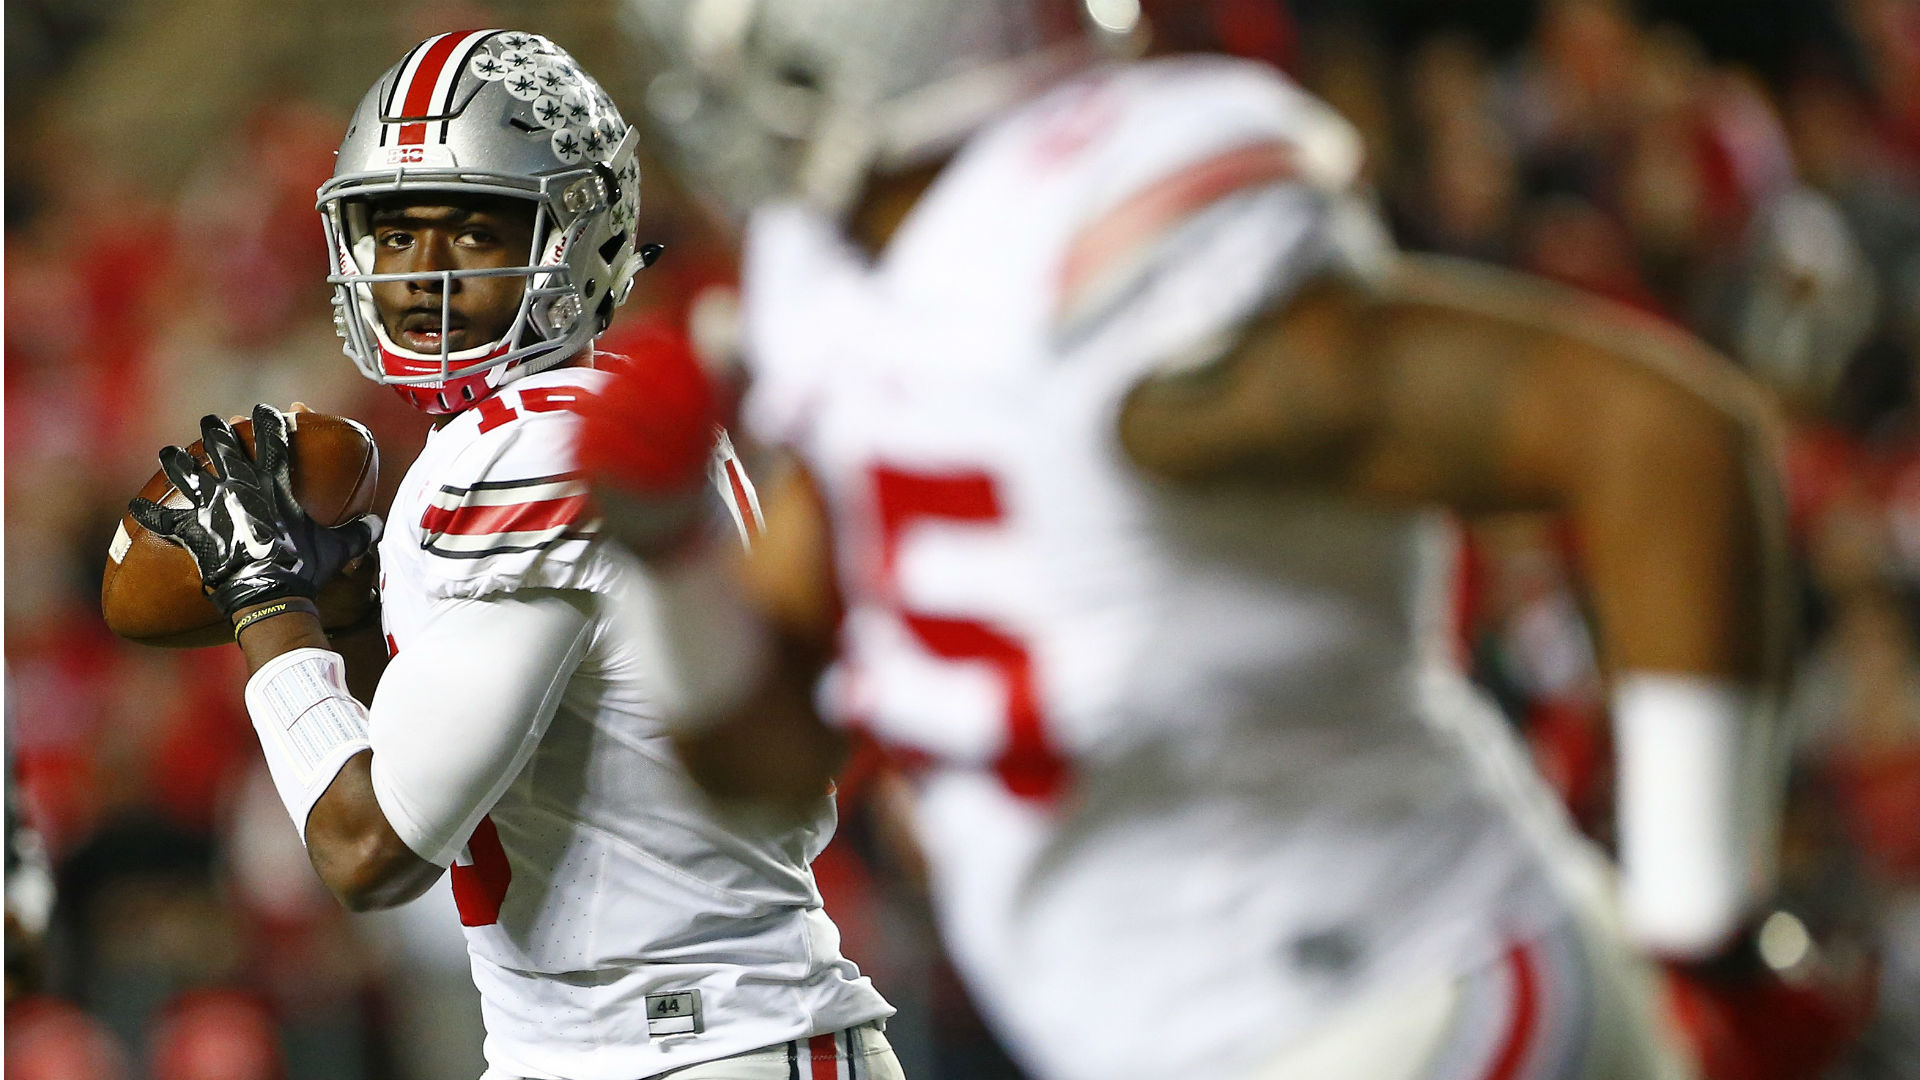 jt-barrett-103115-usnews-getty-FTR